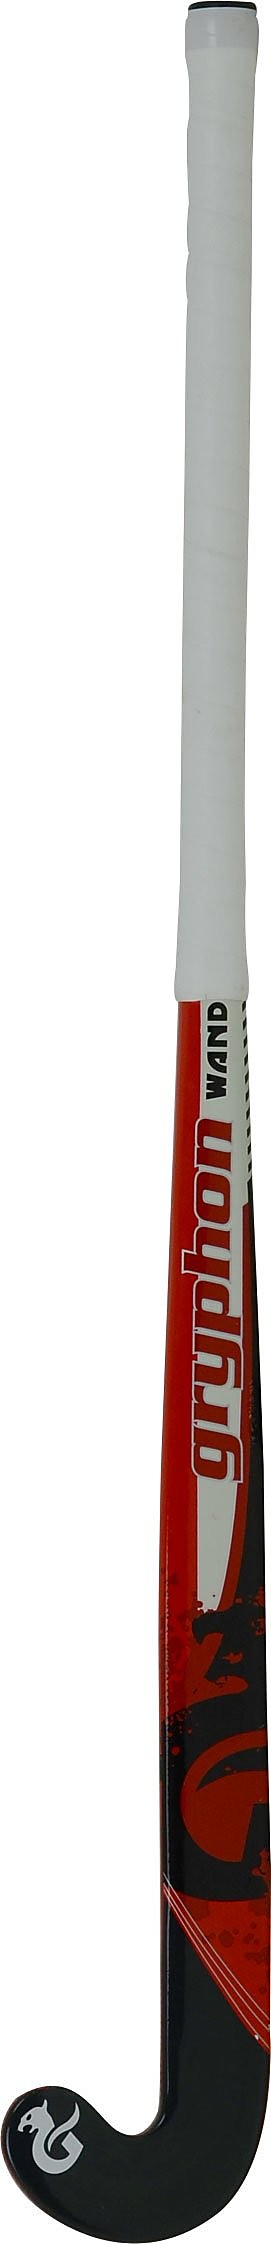 Gryphon WAND JUNIOR HOCKEY